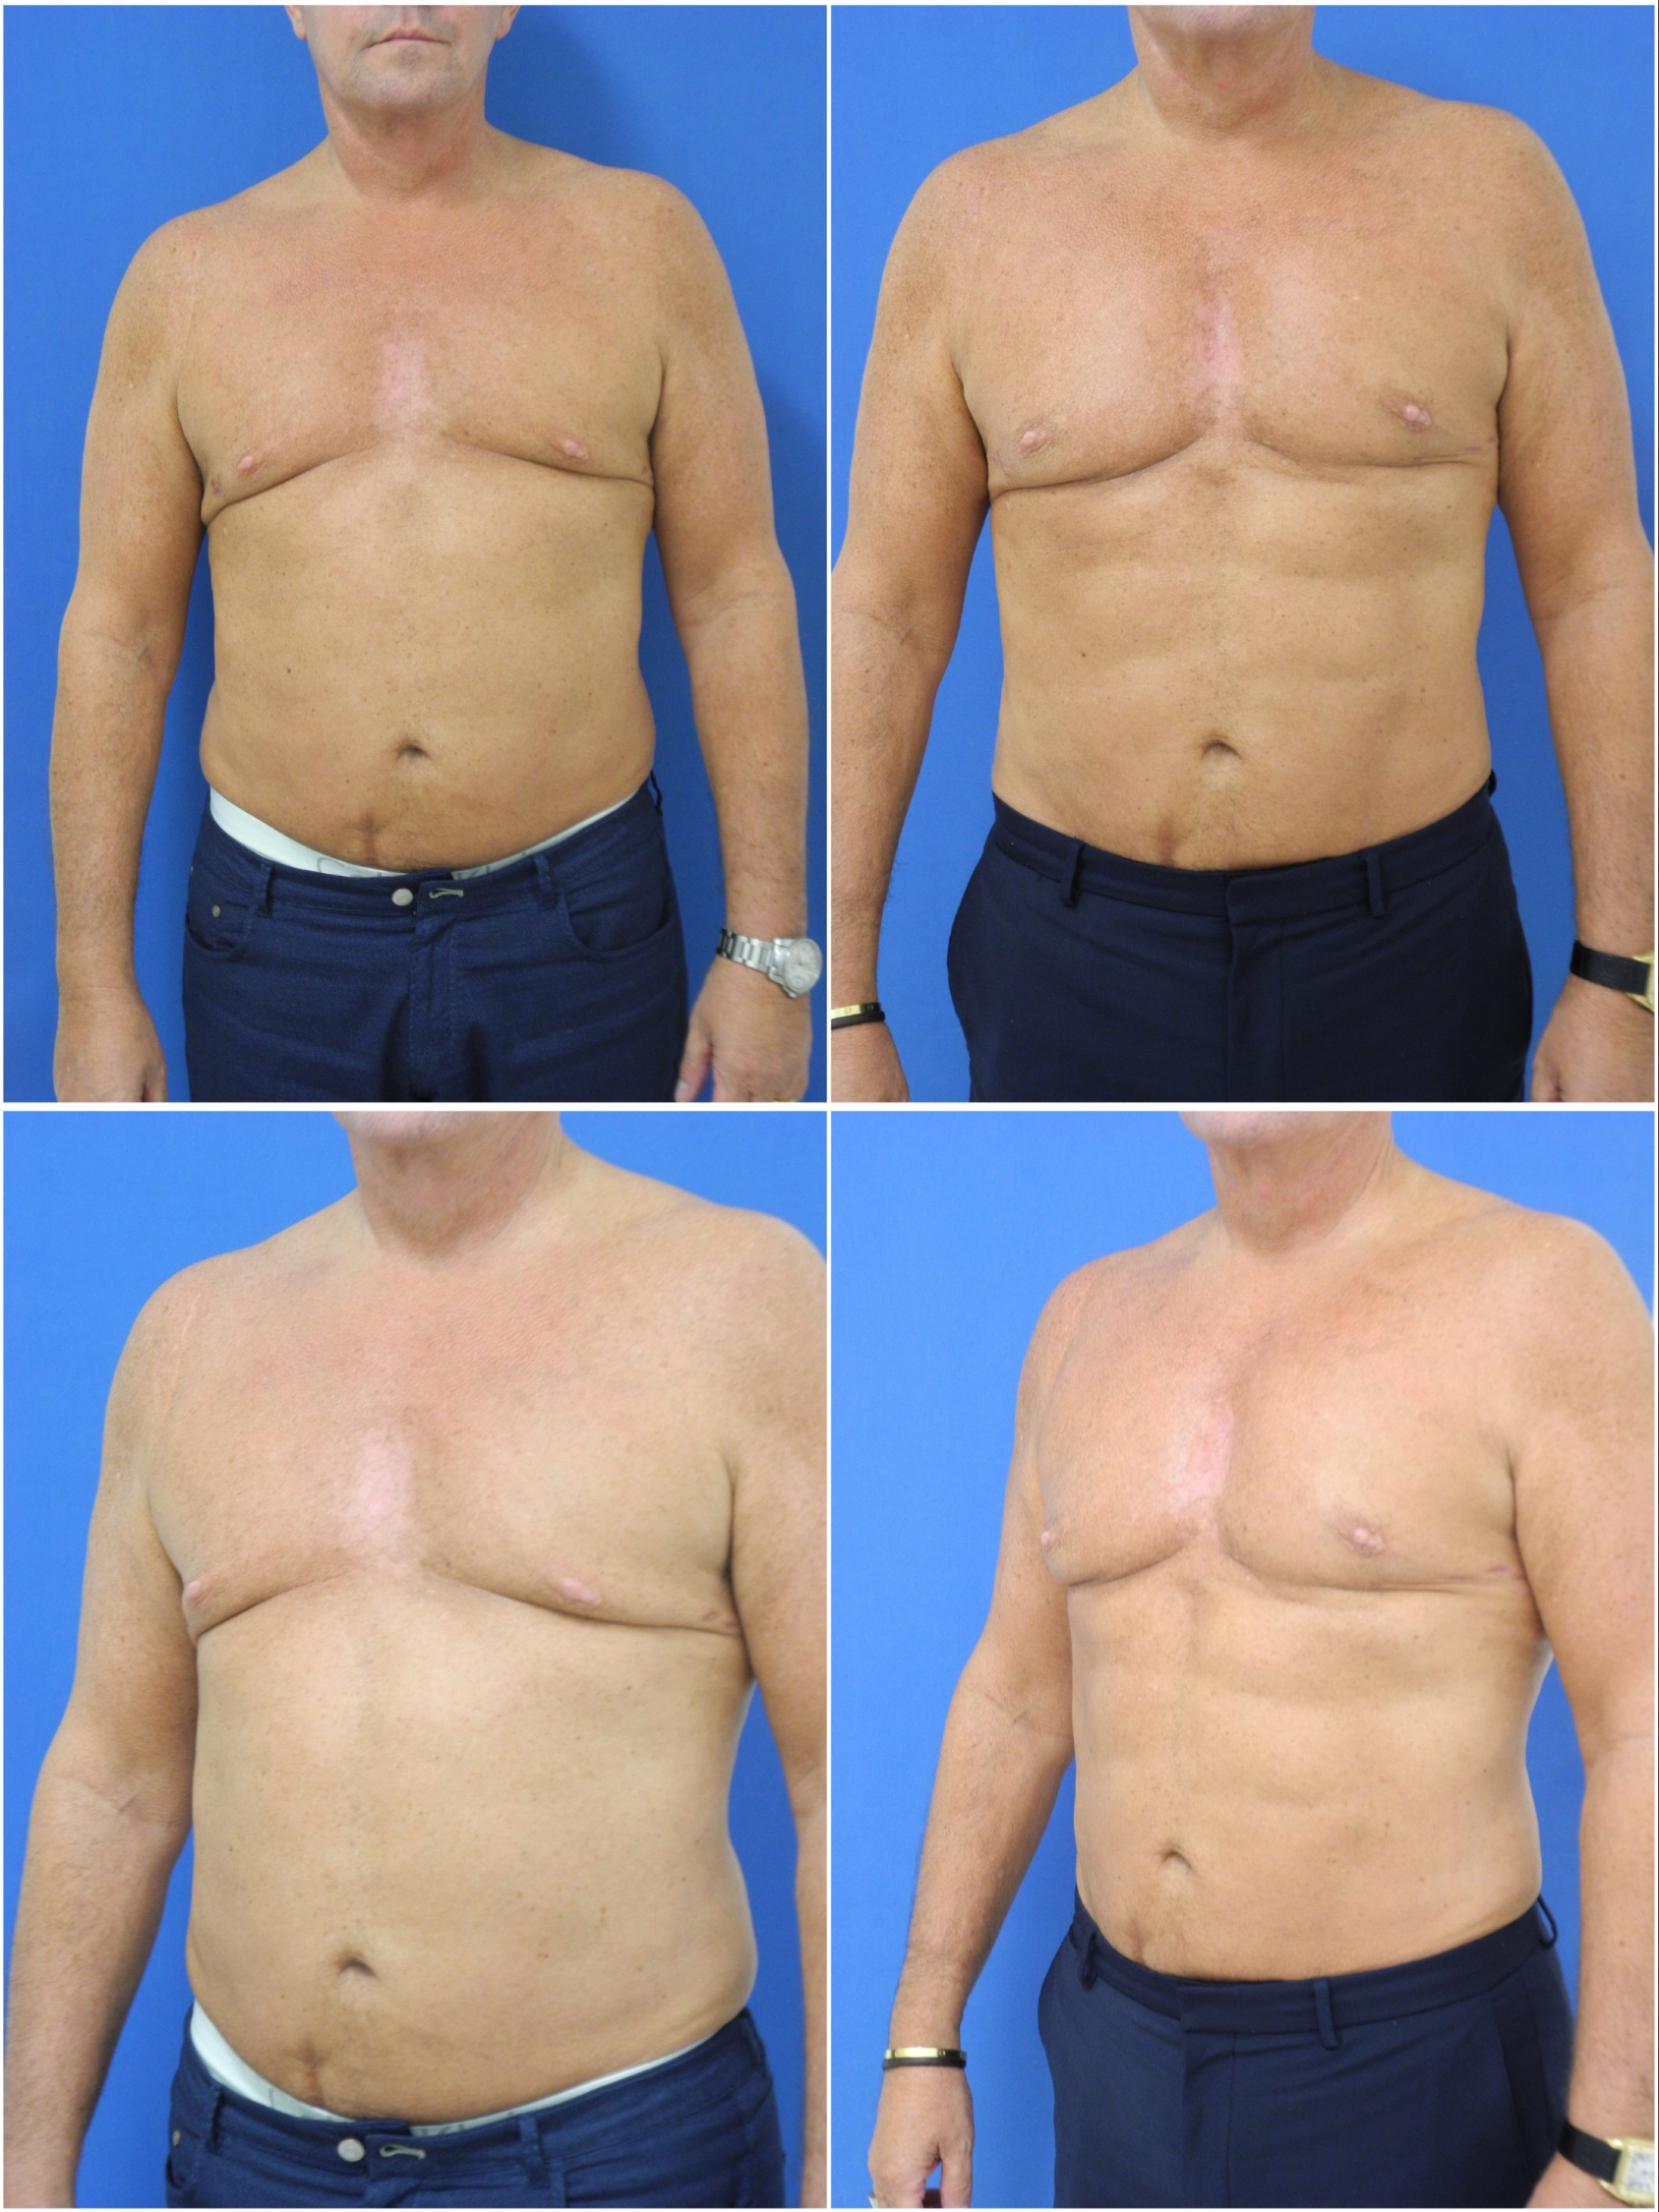 Liposuction Abdominal Etching and Pec Implants Miami